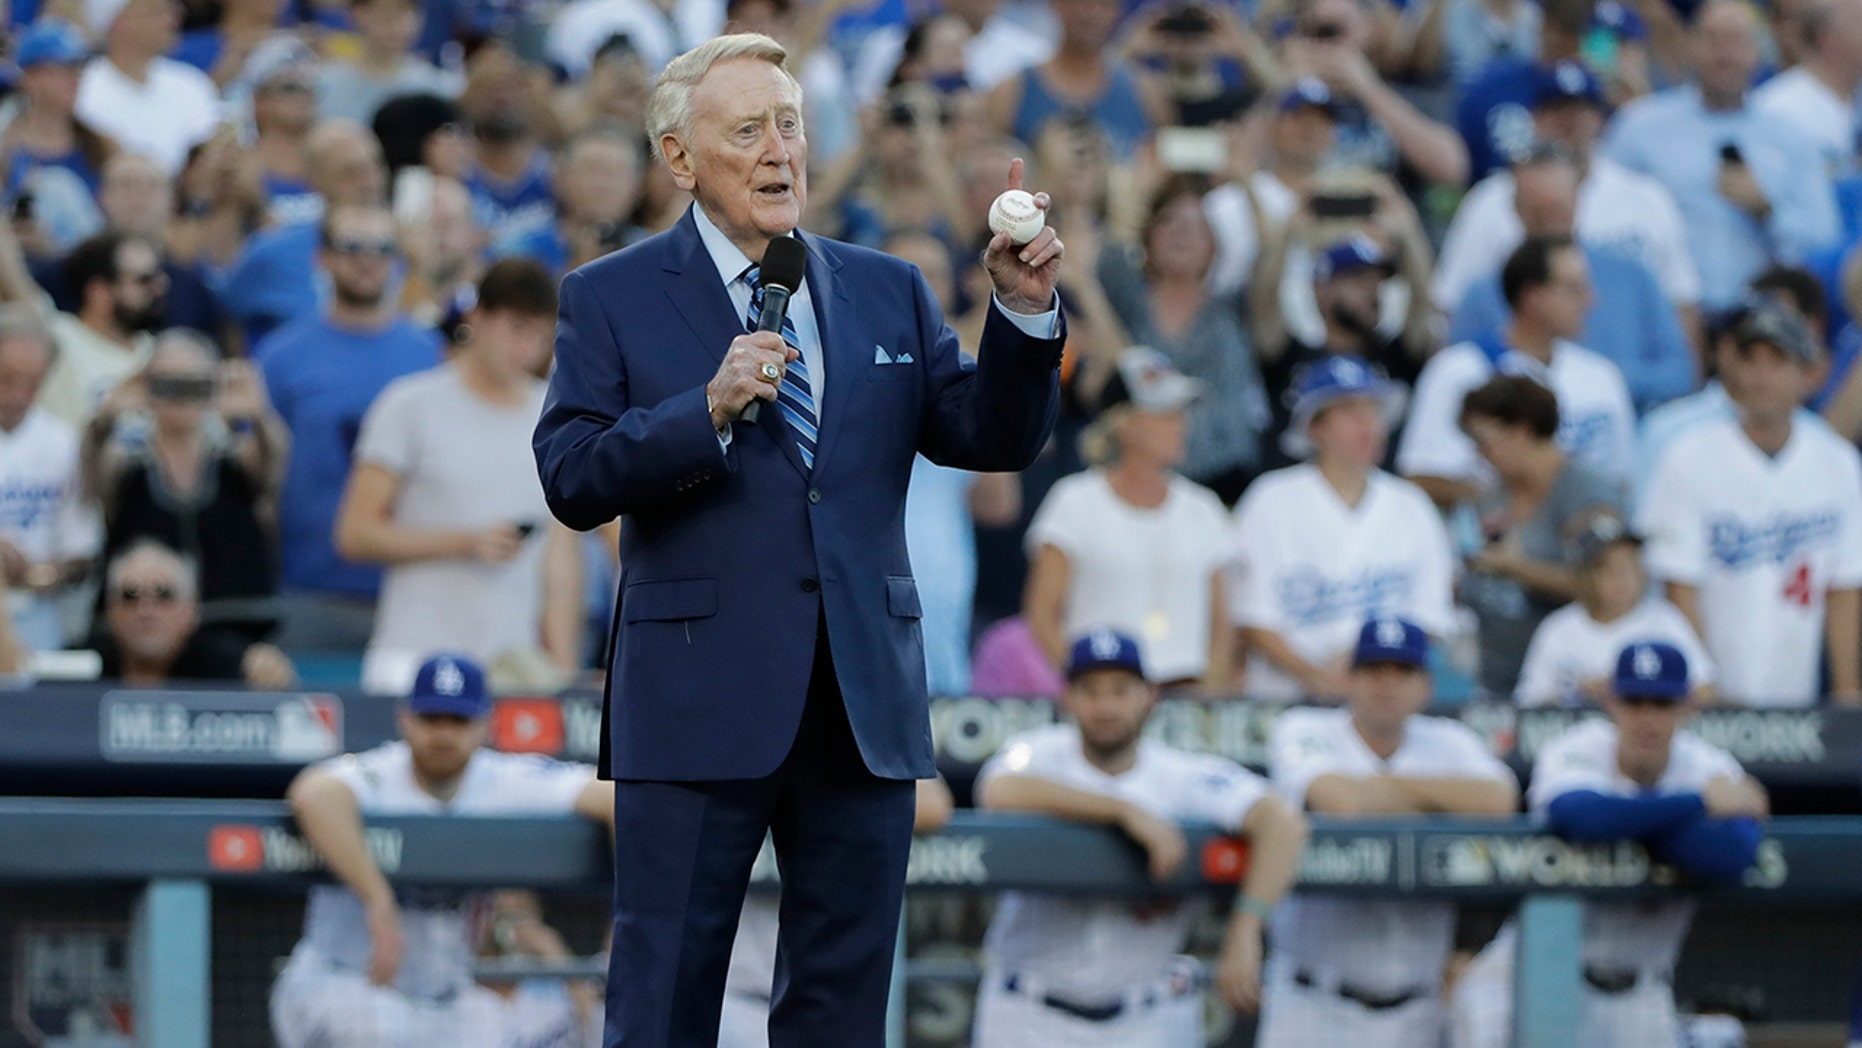 Vin Scully helps throw out the ceremonial first pitch before Game 2 of baseball's World Series between the Houston Astros and the Los Angeles Dodgers Wednesday, Oct. 25, 2017, in Los Angeles.